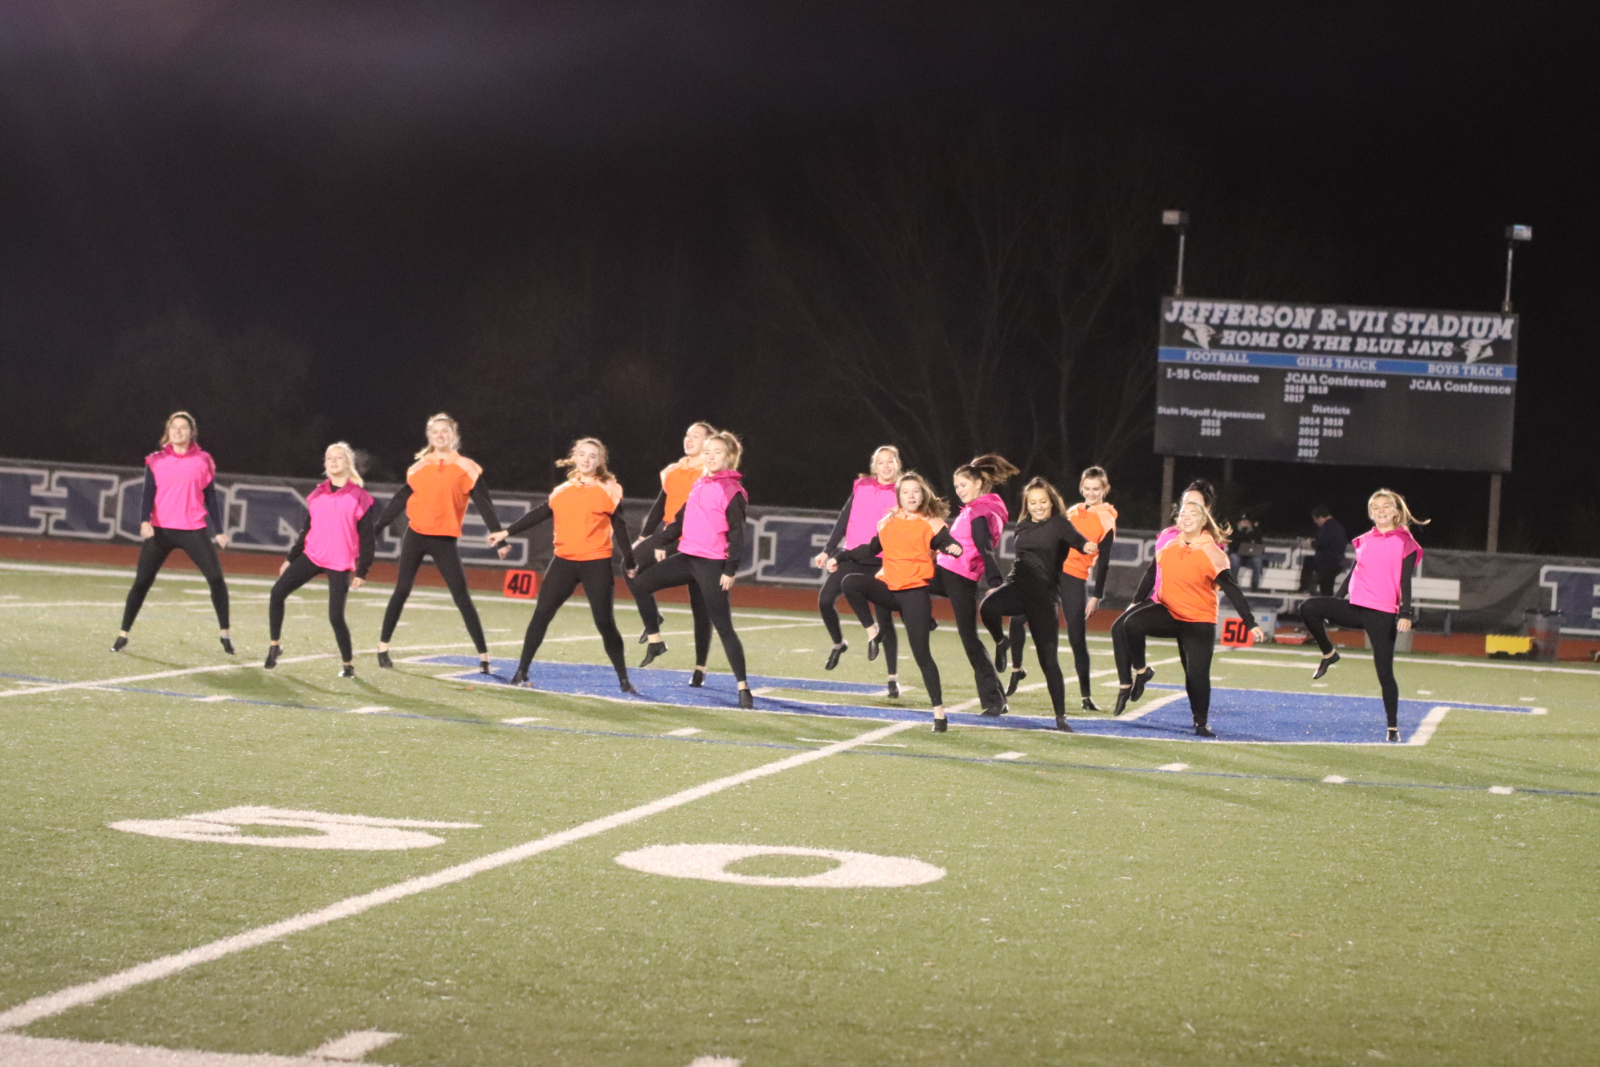 Dance team during halftime JHS vs New Madrid FB game 11/13/20